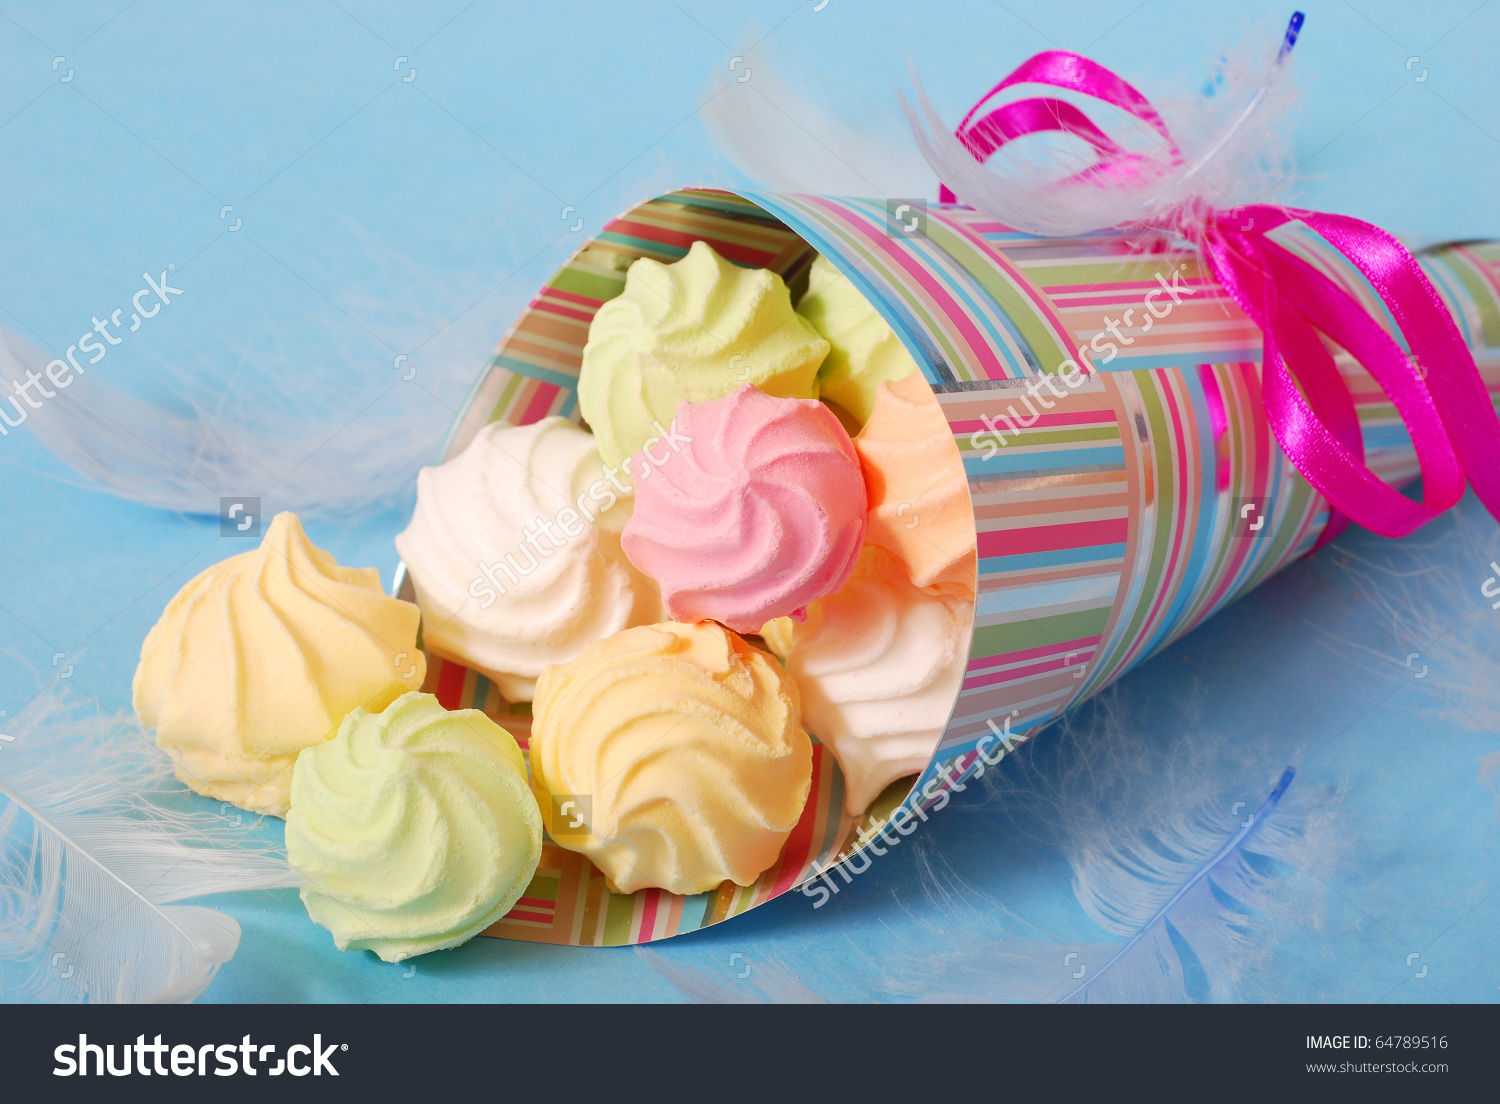 Colorful Meringues In Paper Cone For Birthday Party Stock Photo.